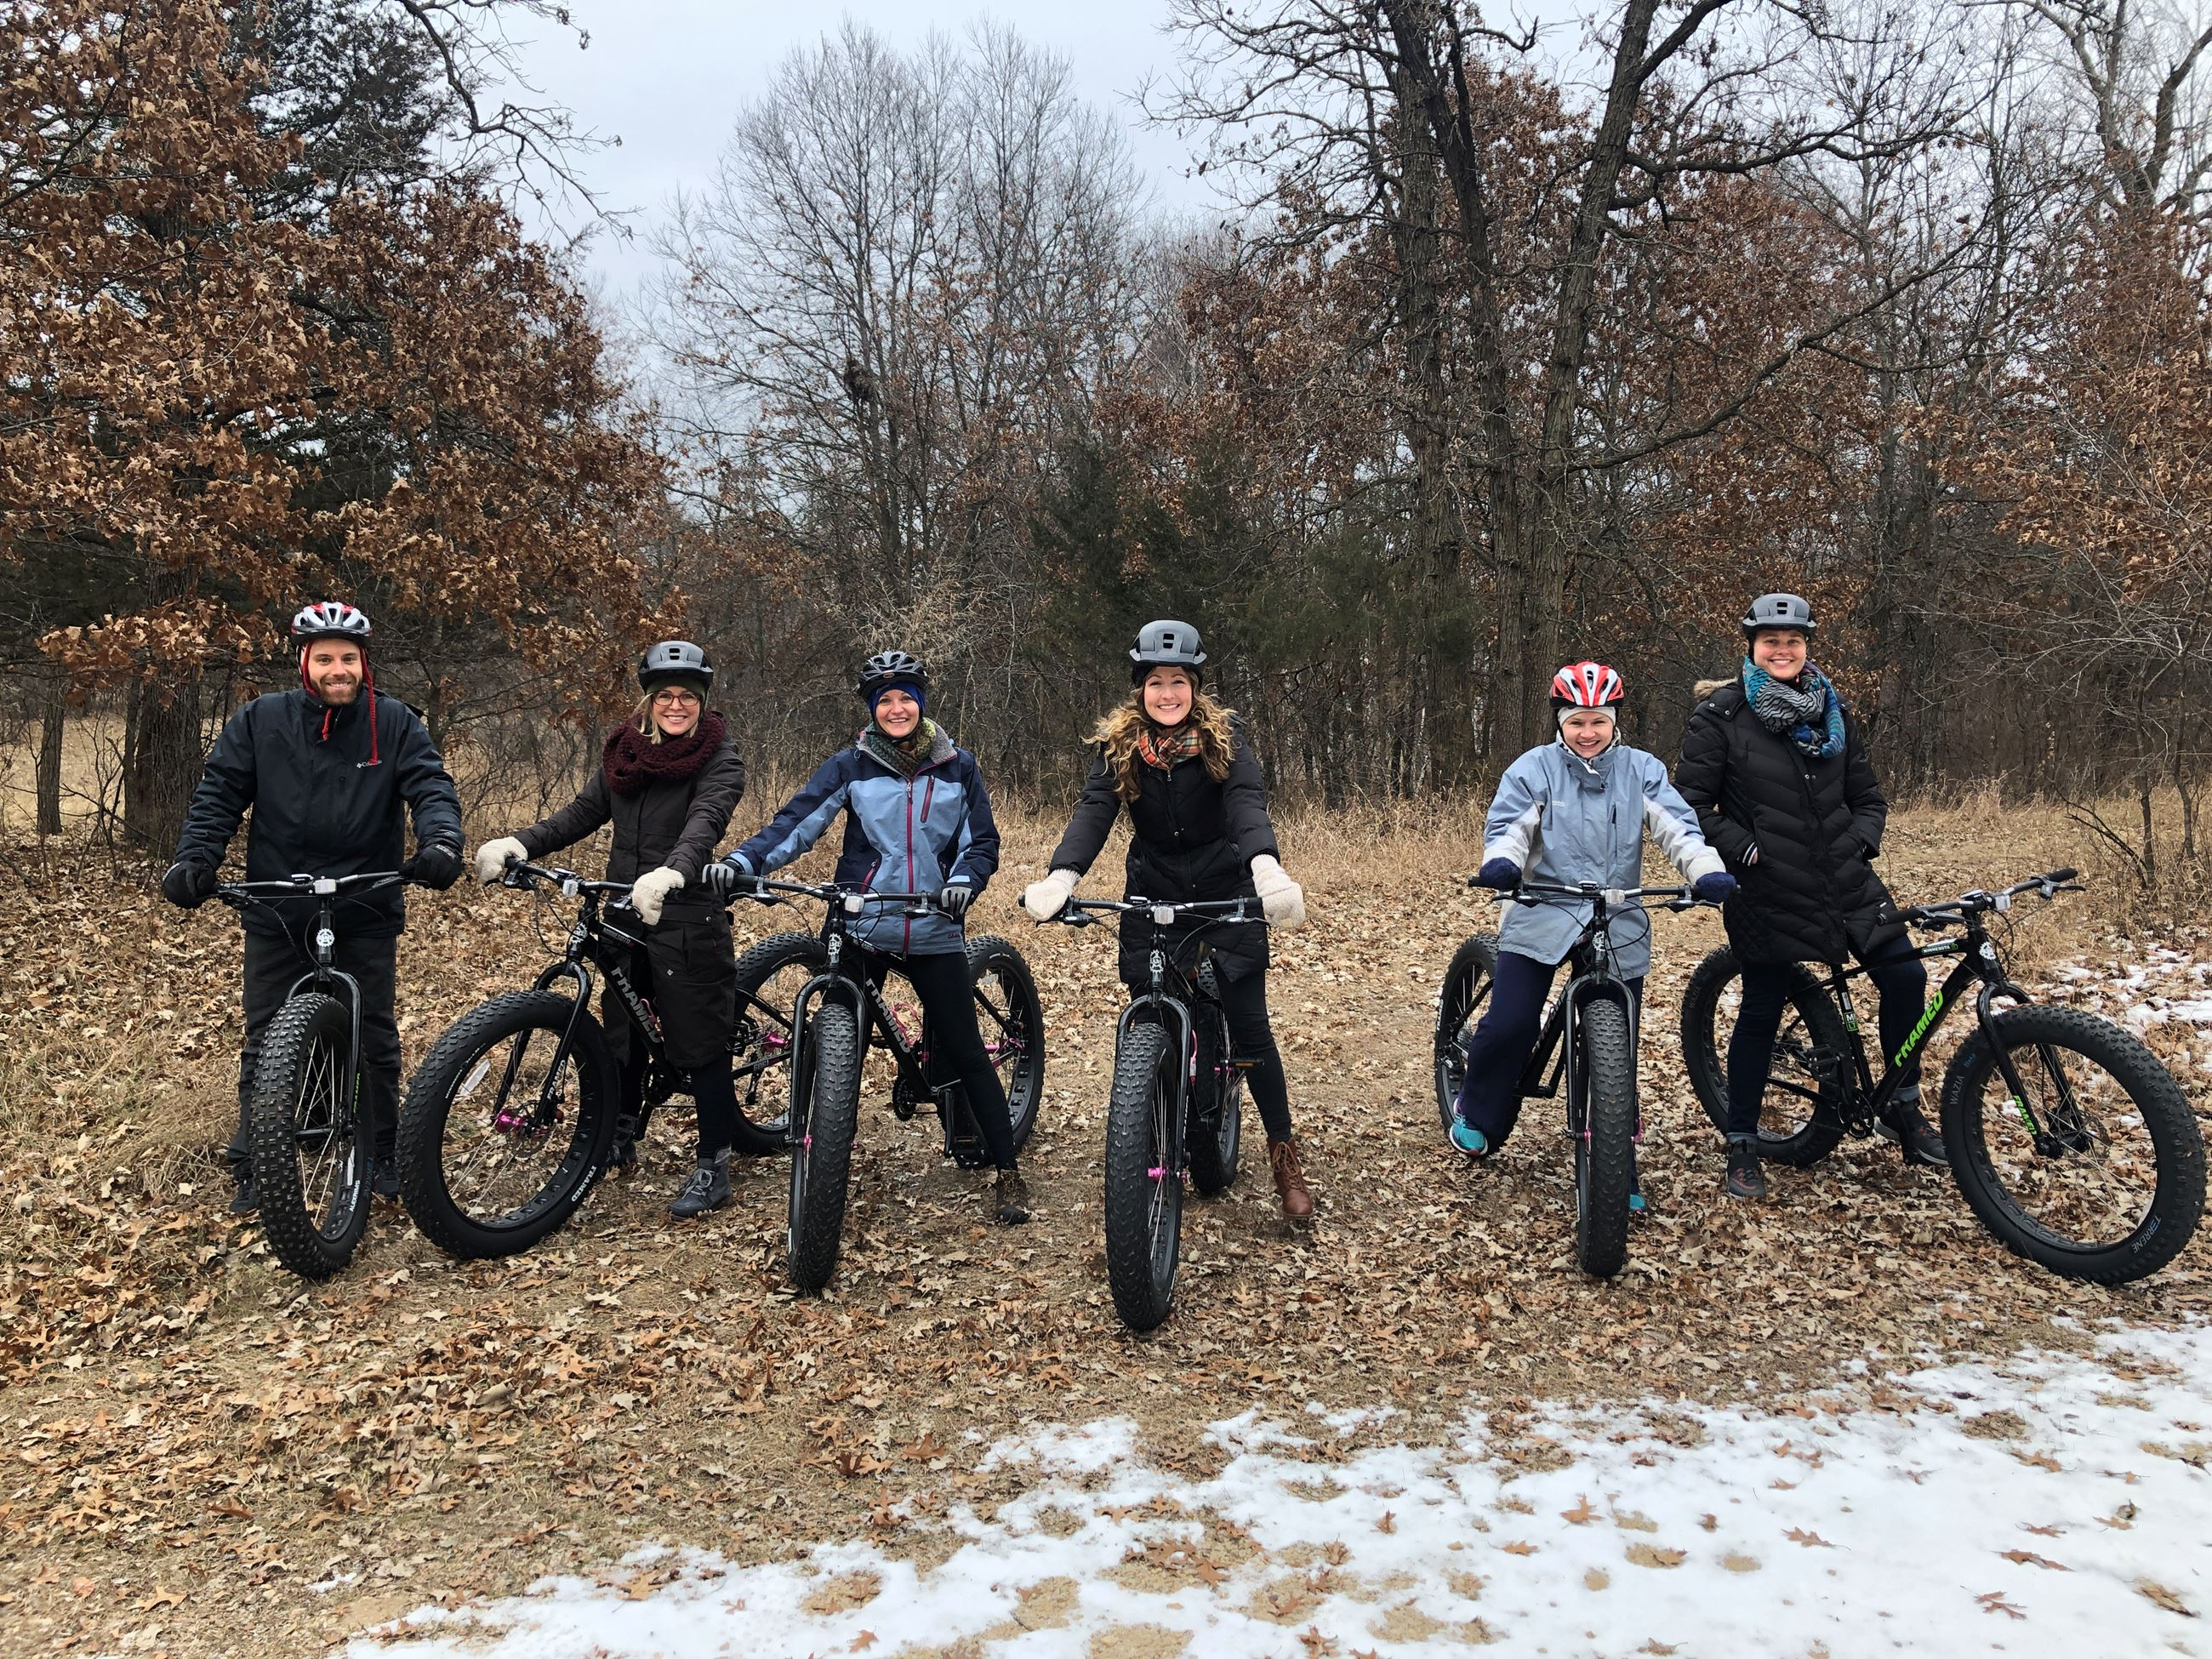 Image of Statewide Health Improvement Partnership Staff riding fat tire bikes